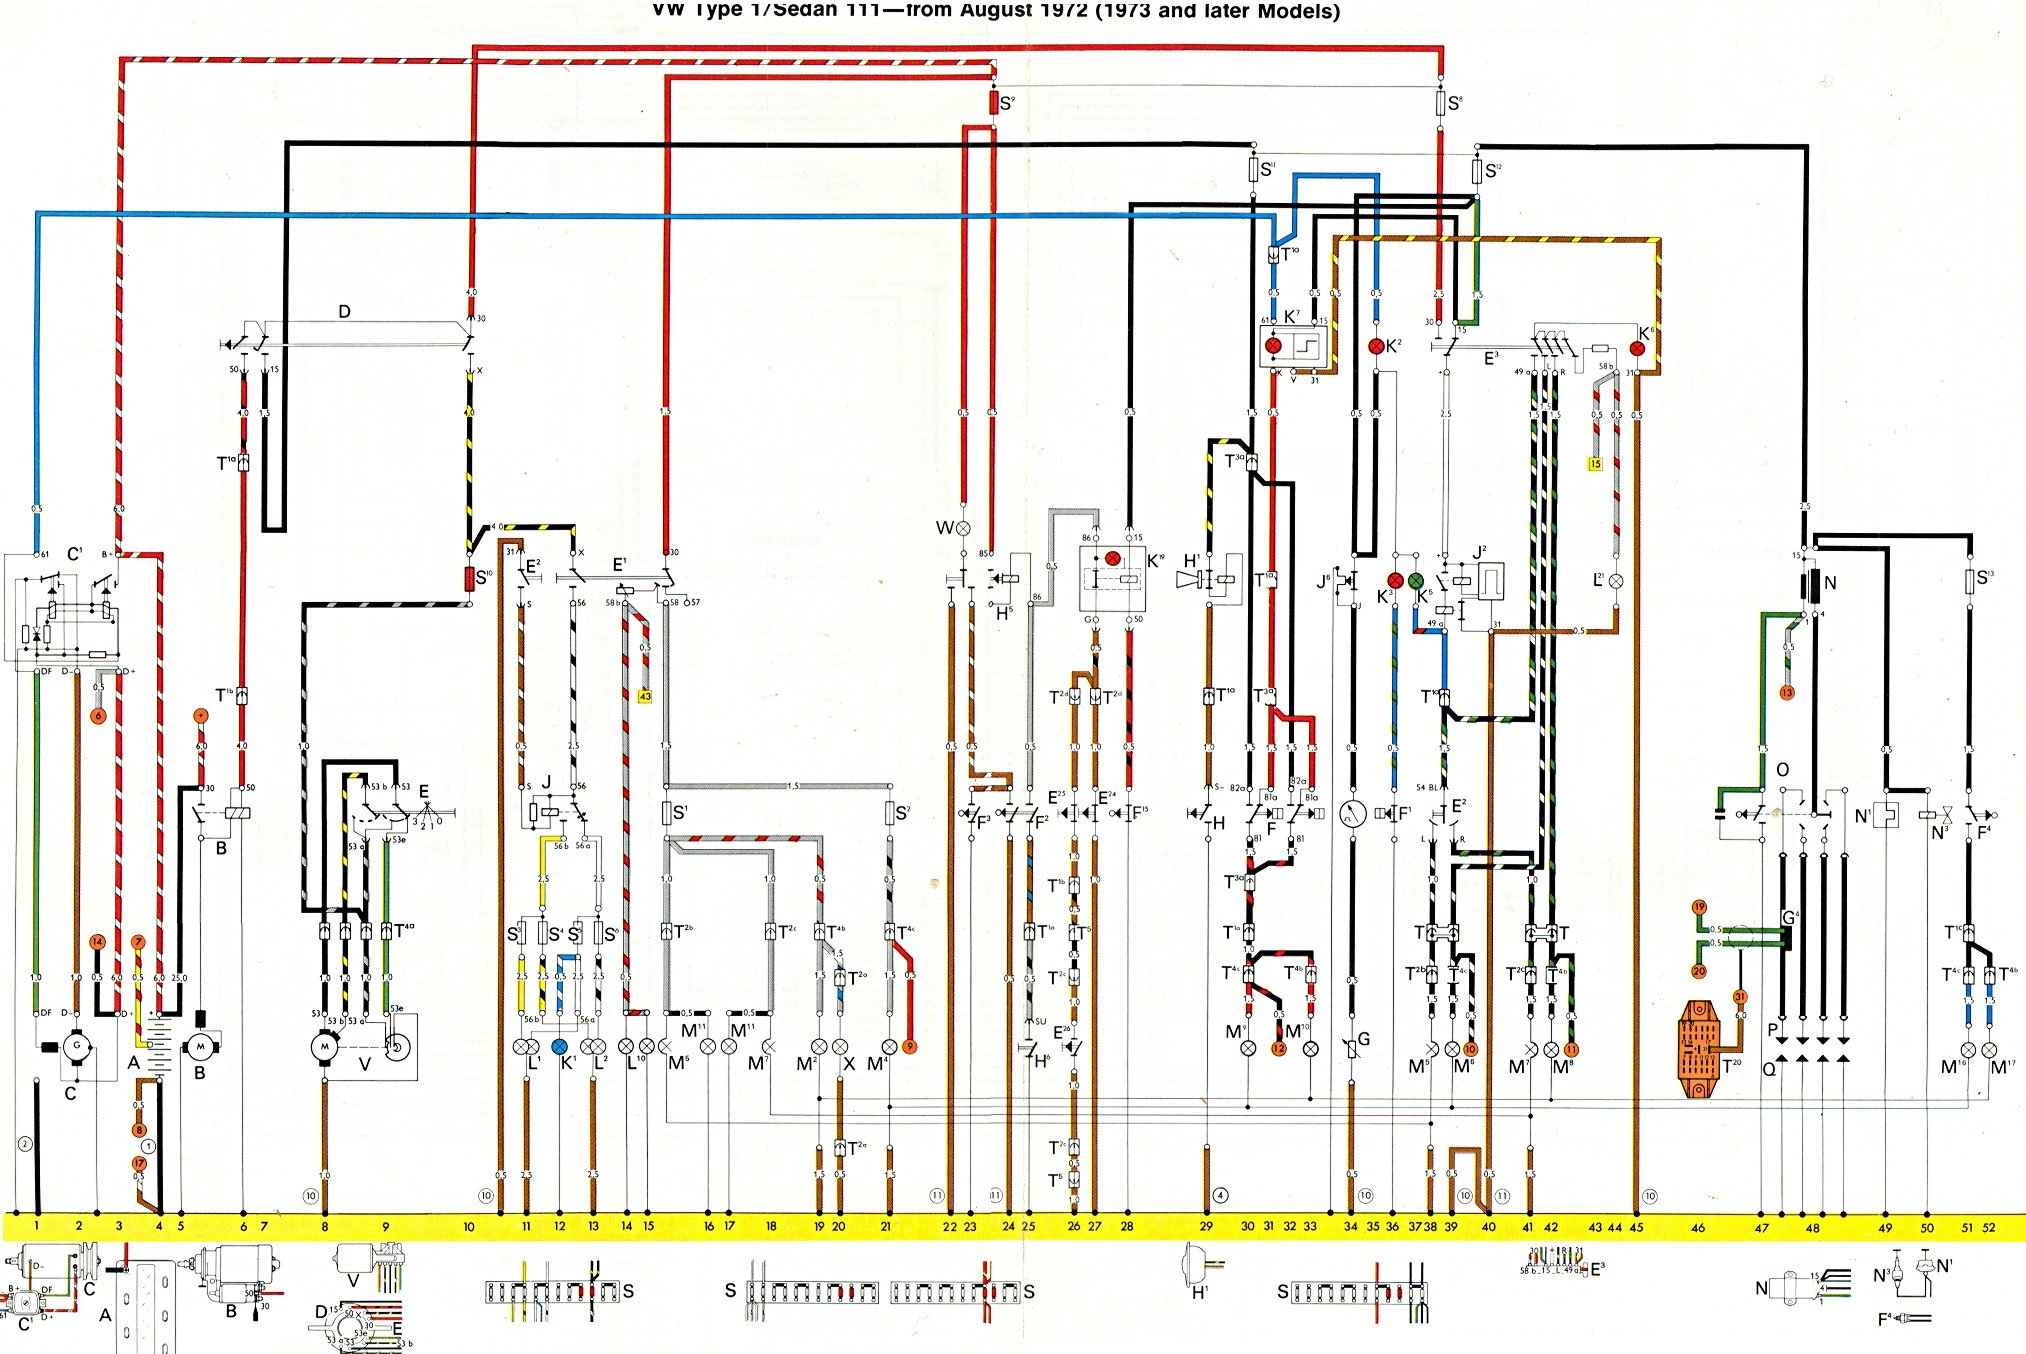 74 bug wiring schematics my 74 vw bug right taillight as well as licence plate ...